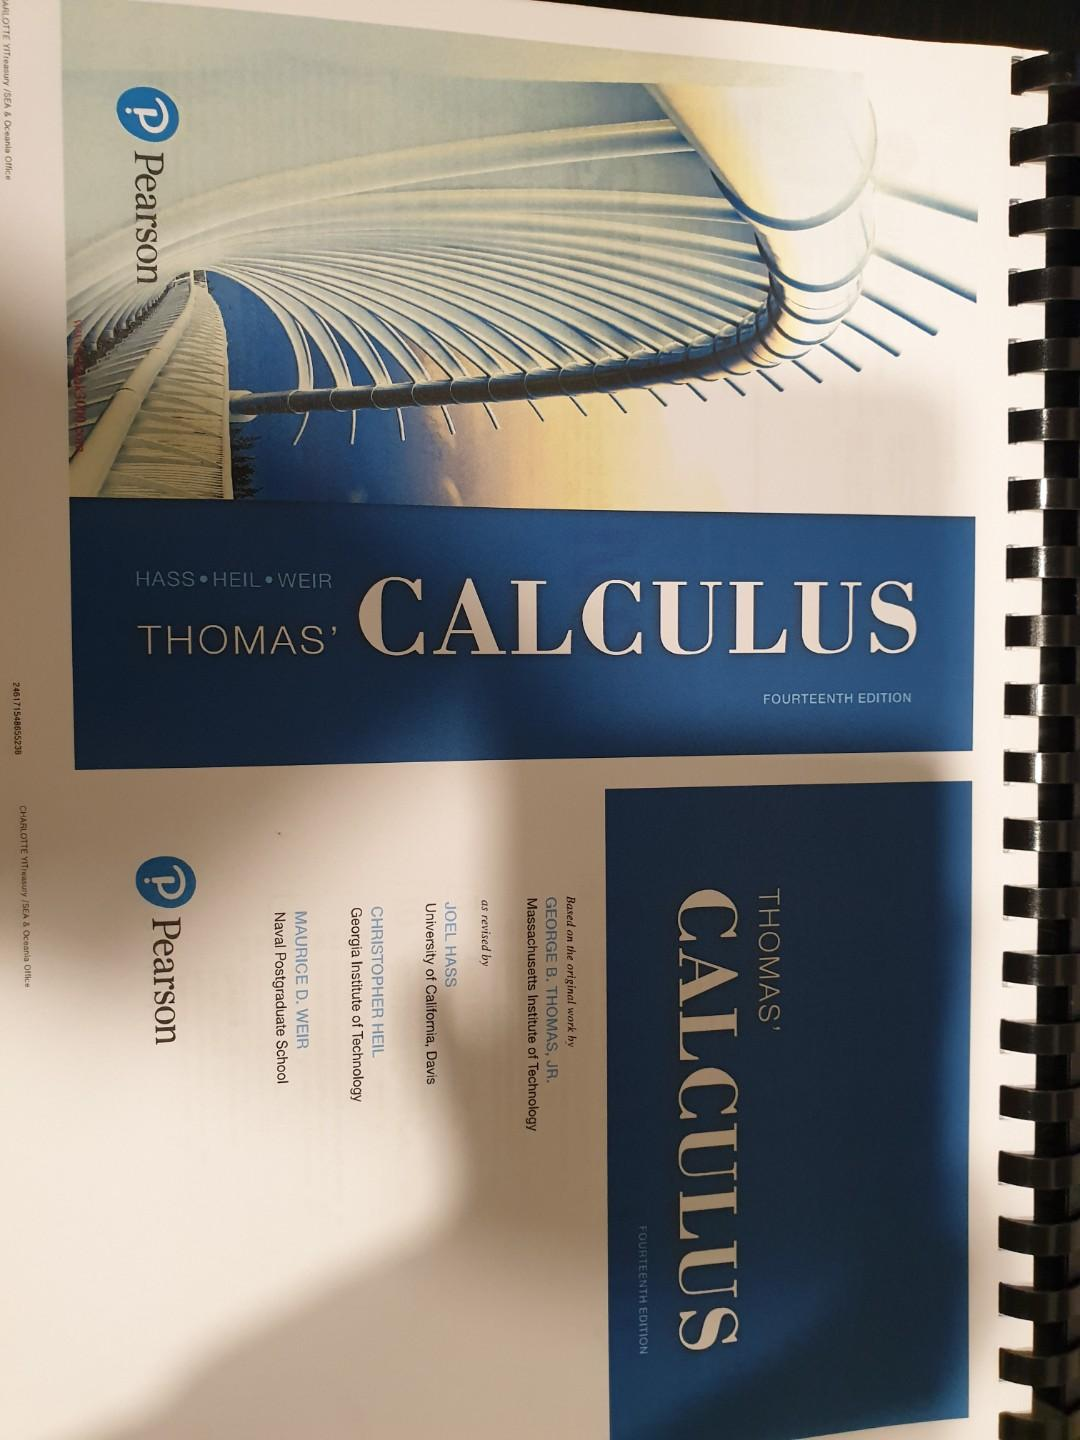 MA1102R Physical Textbook, Books & Stationery, Textbooks